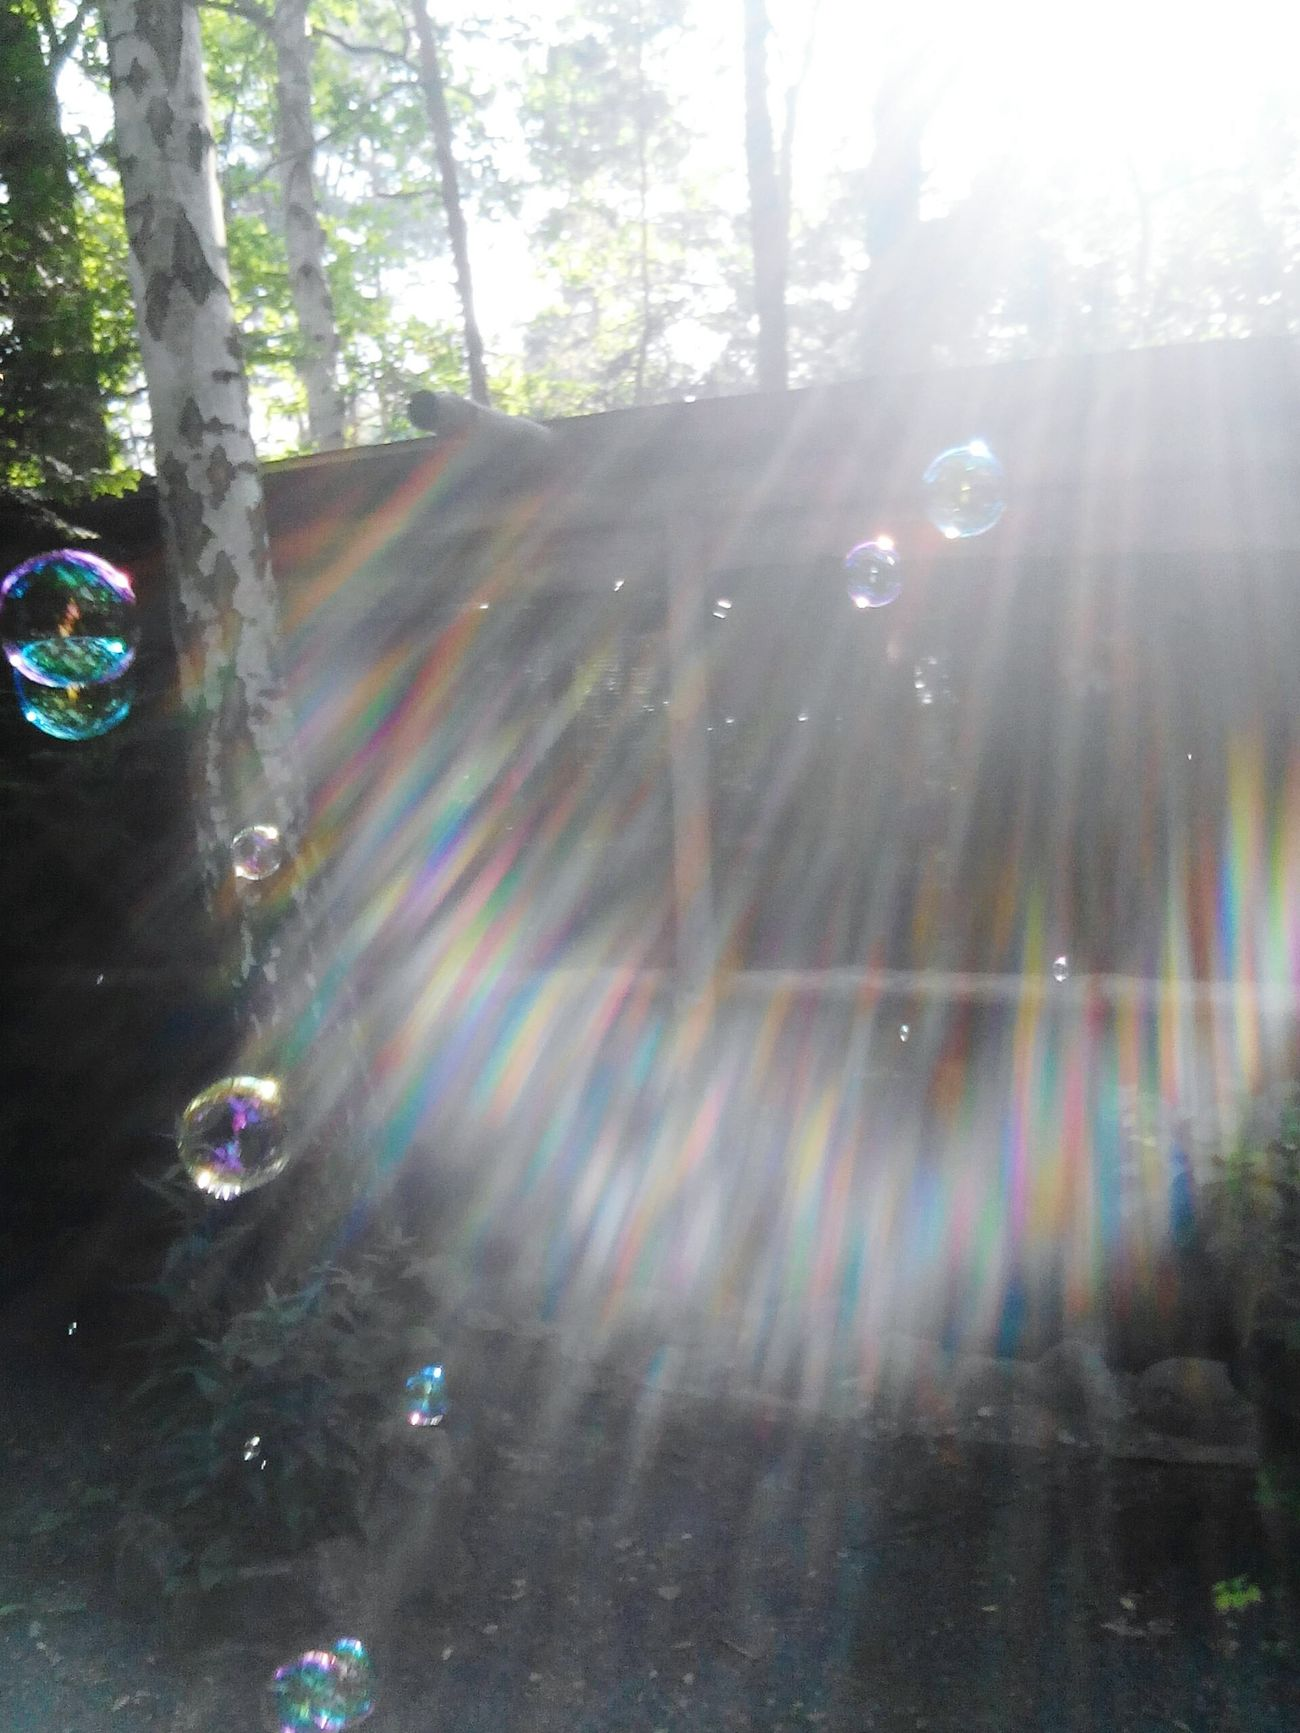 Pretty♡ Summer Memories 🌄 Summer Views Summer2016 Love To Take Photos ❤ Paradise On Earth Outside Photography Summer ☀ Summertime ♥ Lovely Day Hello World Colorful Nature Lovely Weather Summer Weather > 😚 Sunny Day 🌞 Soapbubbles Soap Bubbles 💖 Soap Bubble#summer#sunshine